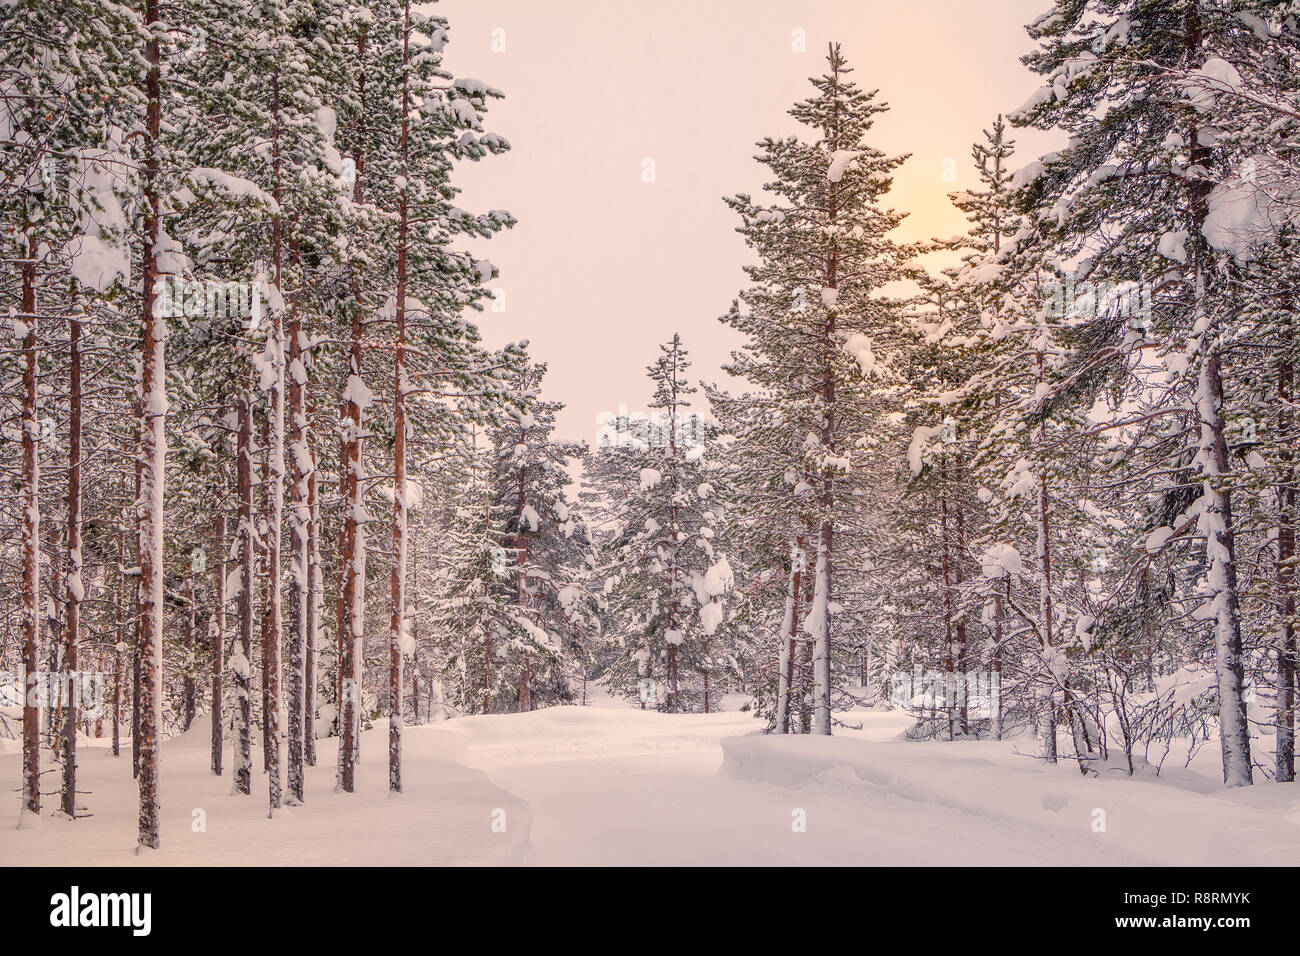 Finnish Lapland. A lot of snow in the pine forest. The sun barely shines through the overcast - Stock Image